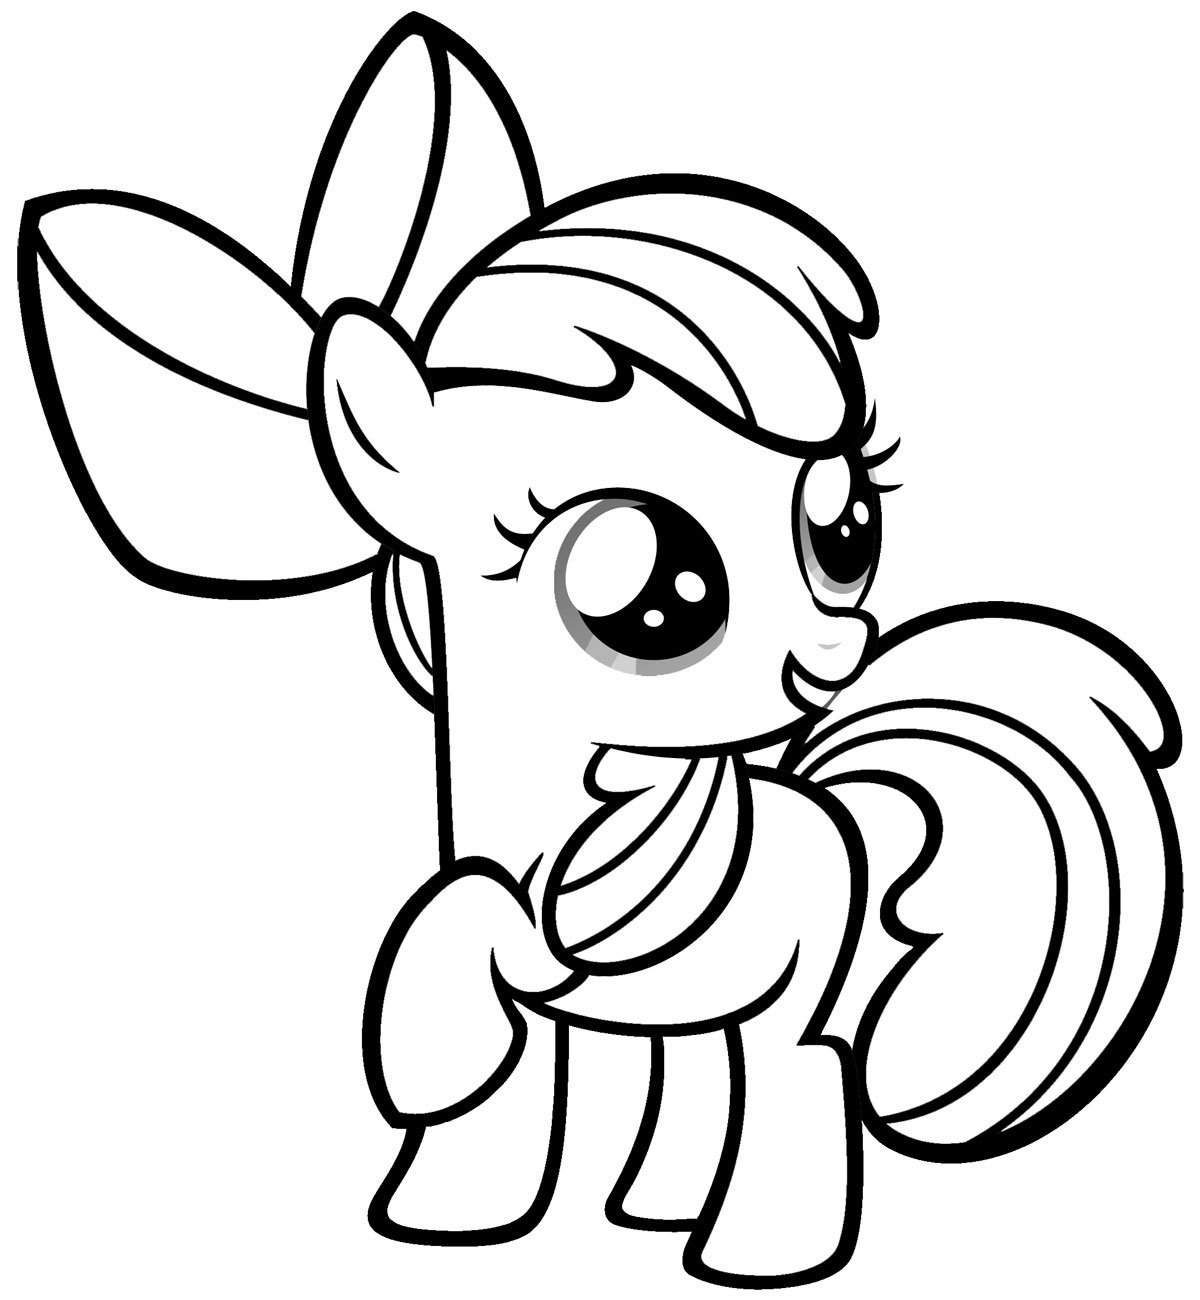 1200x1300 My Little Pony Coloring Pages Dr Odd